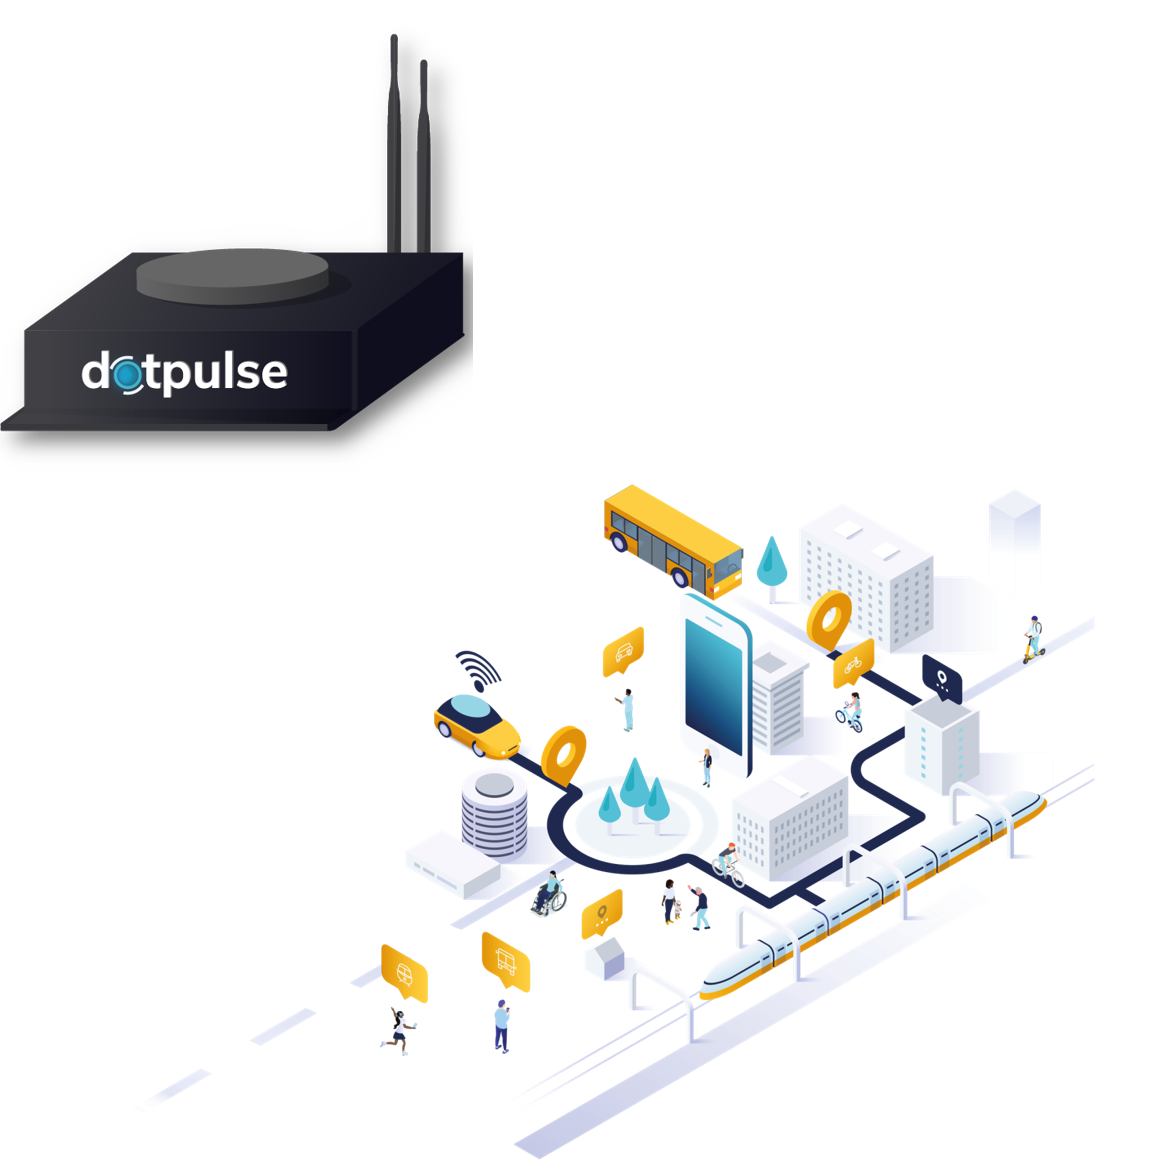 Dotpulse by Kisio